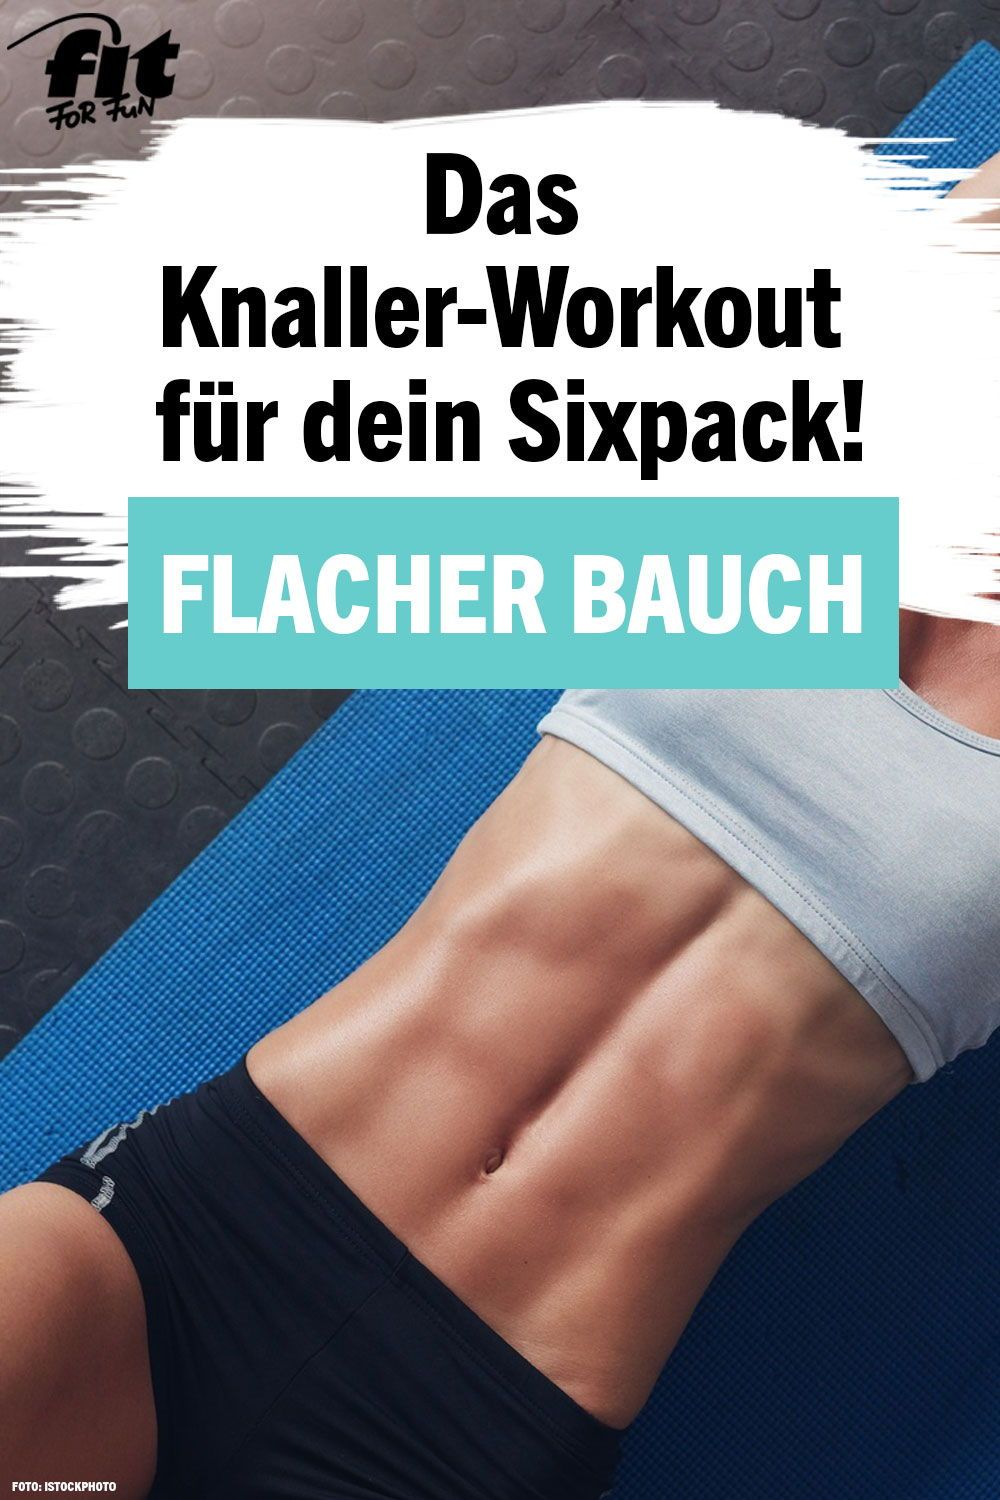 Top-Übungen von Whitney Simmons: Knaller-Workout für dein Sixpack - FIT FOR FUN